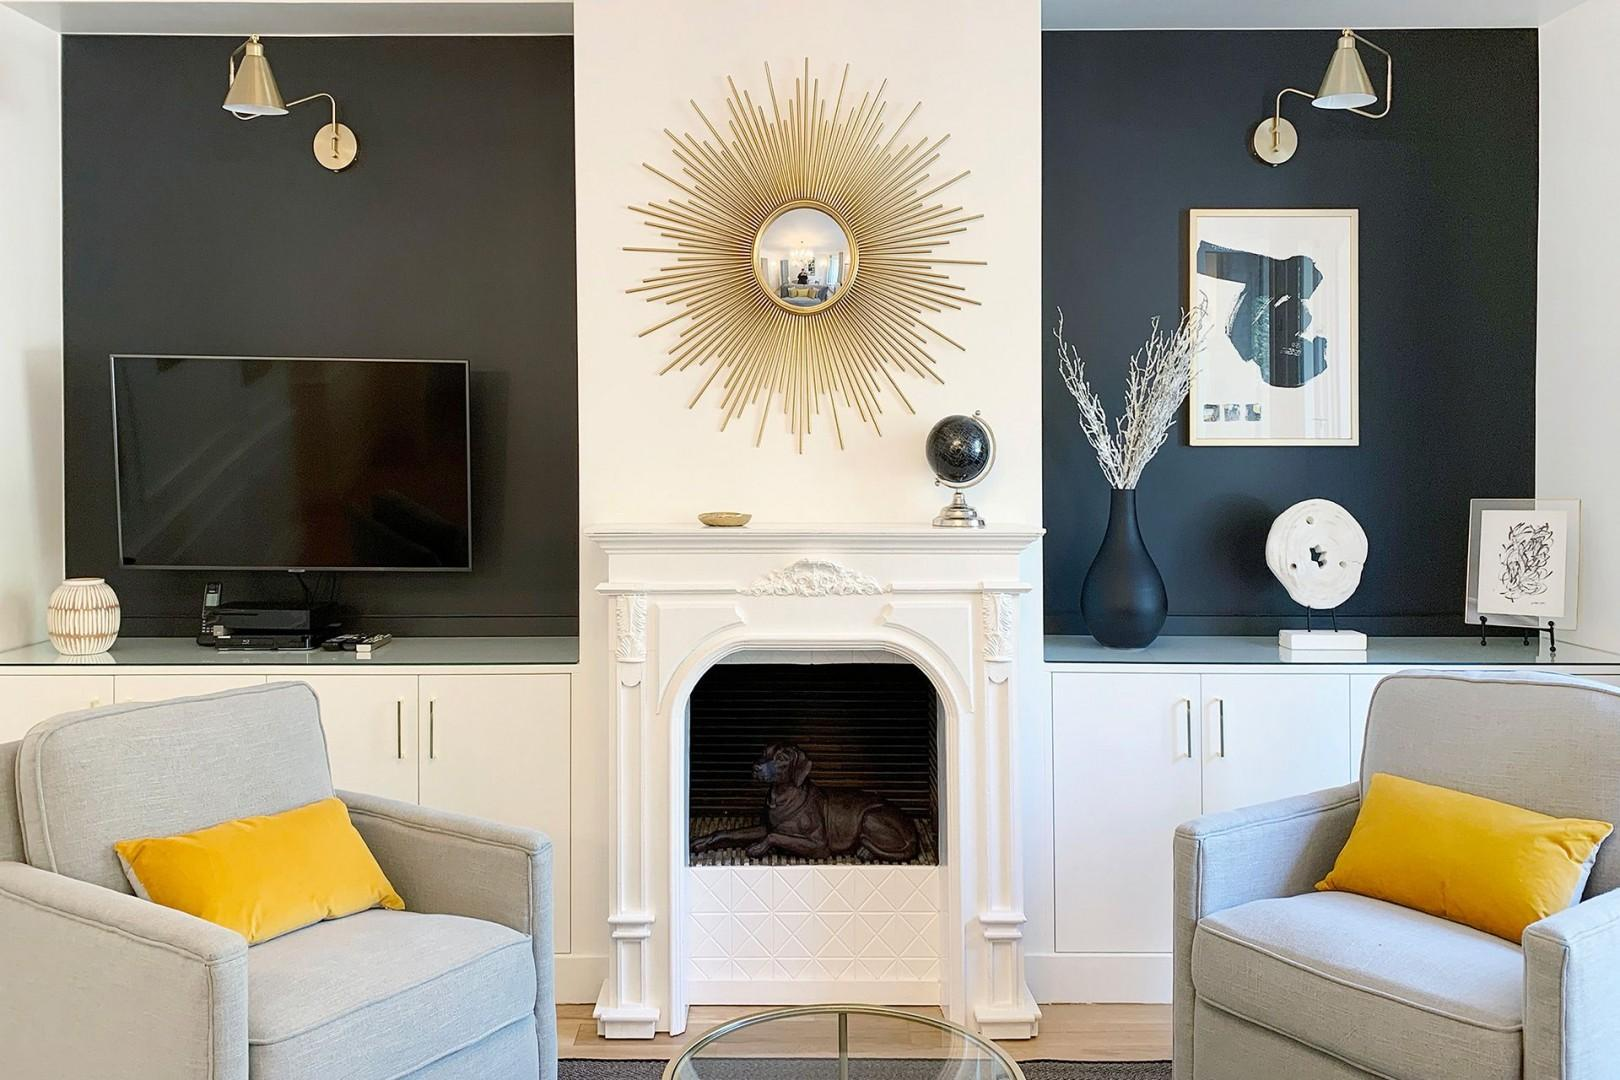 The decorative fireplace, mantle and striking sunburst mirror give the room a chic Parisian feel.